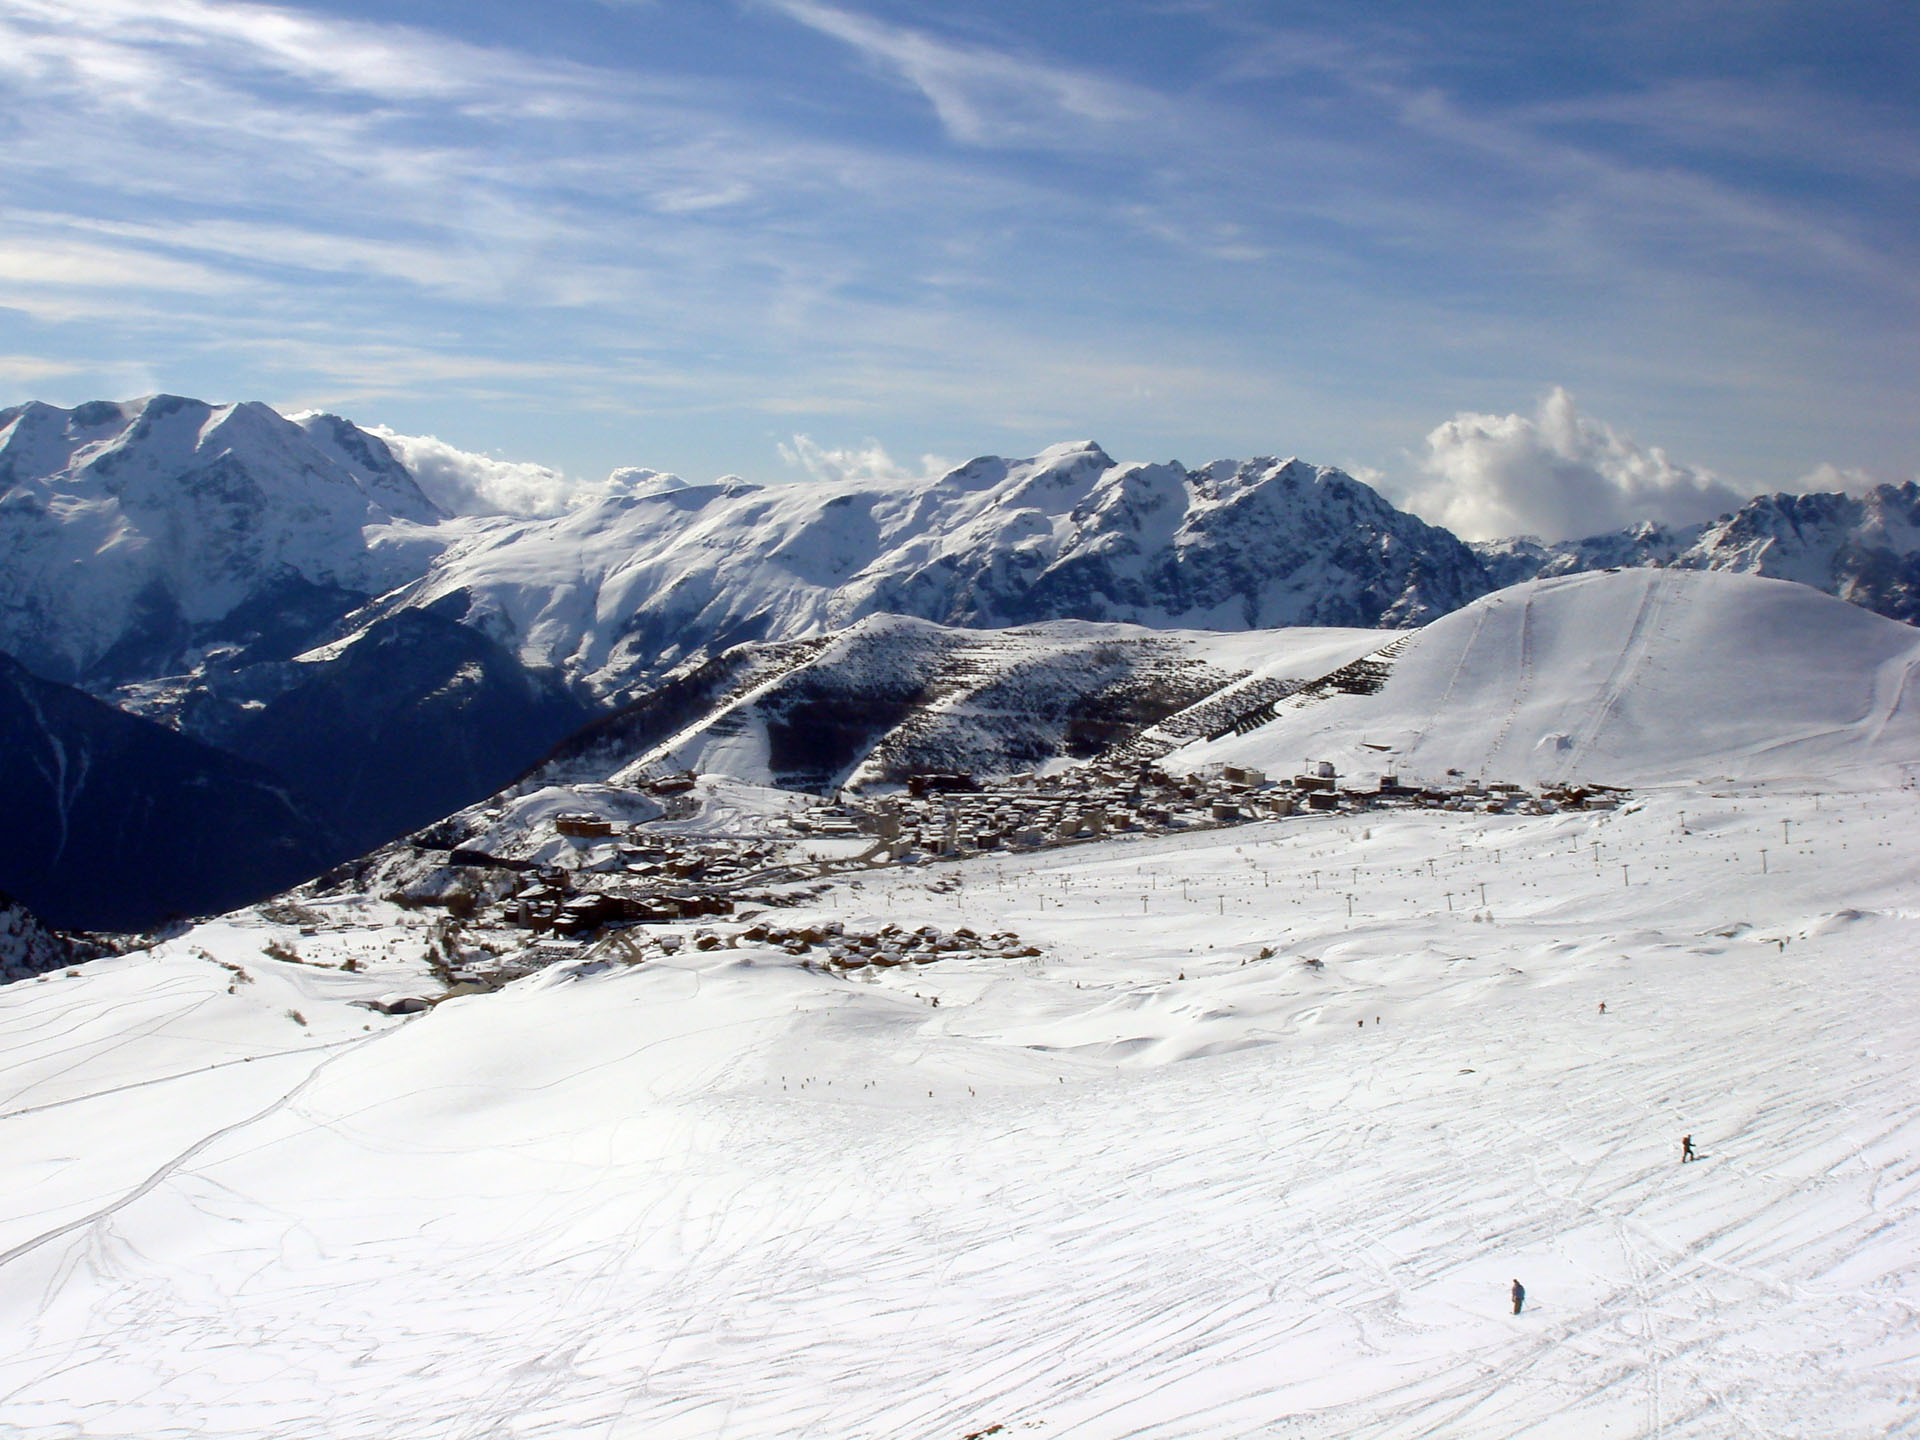 The ski resort Alpe d'Huez is a cluster of chalets and buildings nestled in large, snowy mountains underneath a blue sky